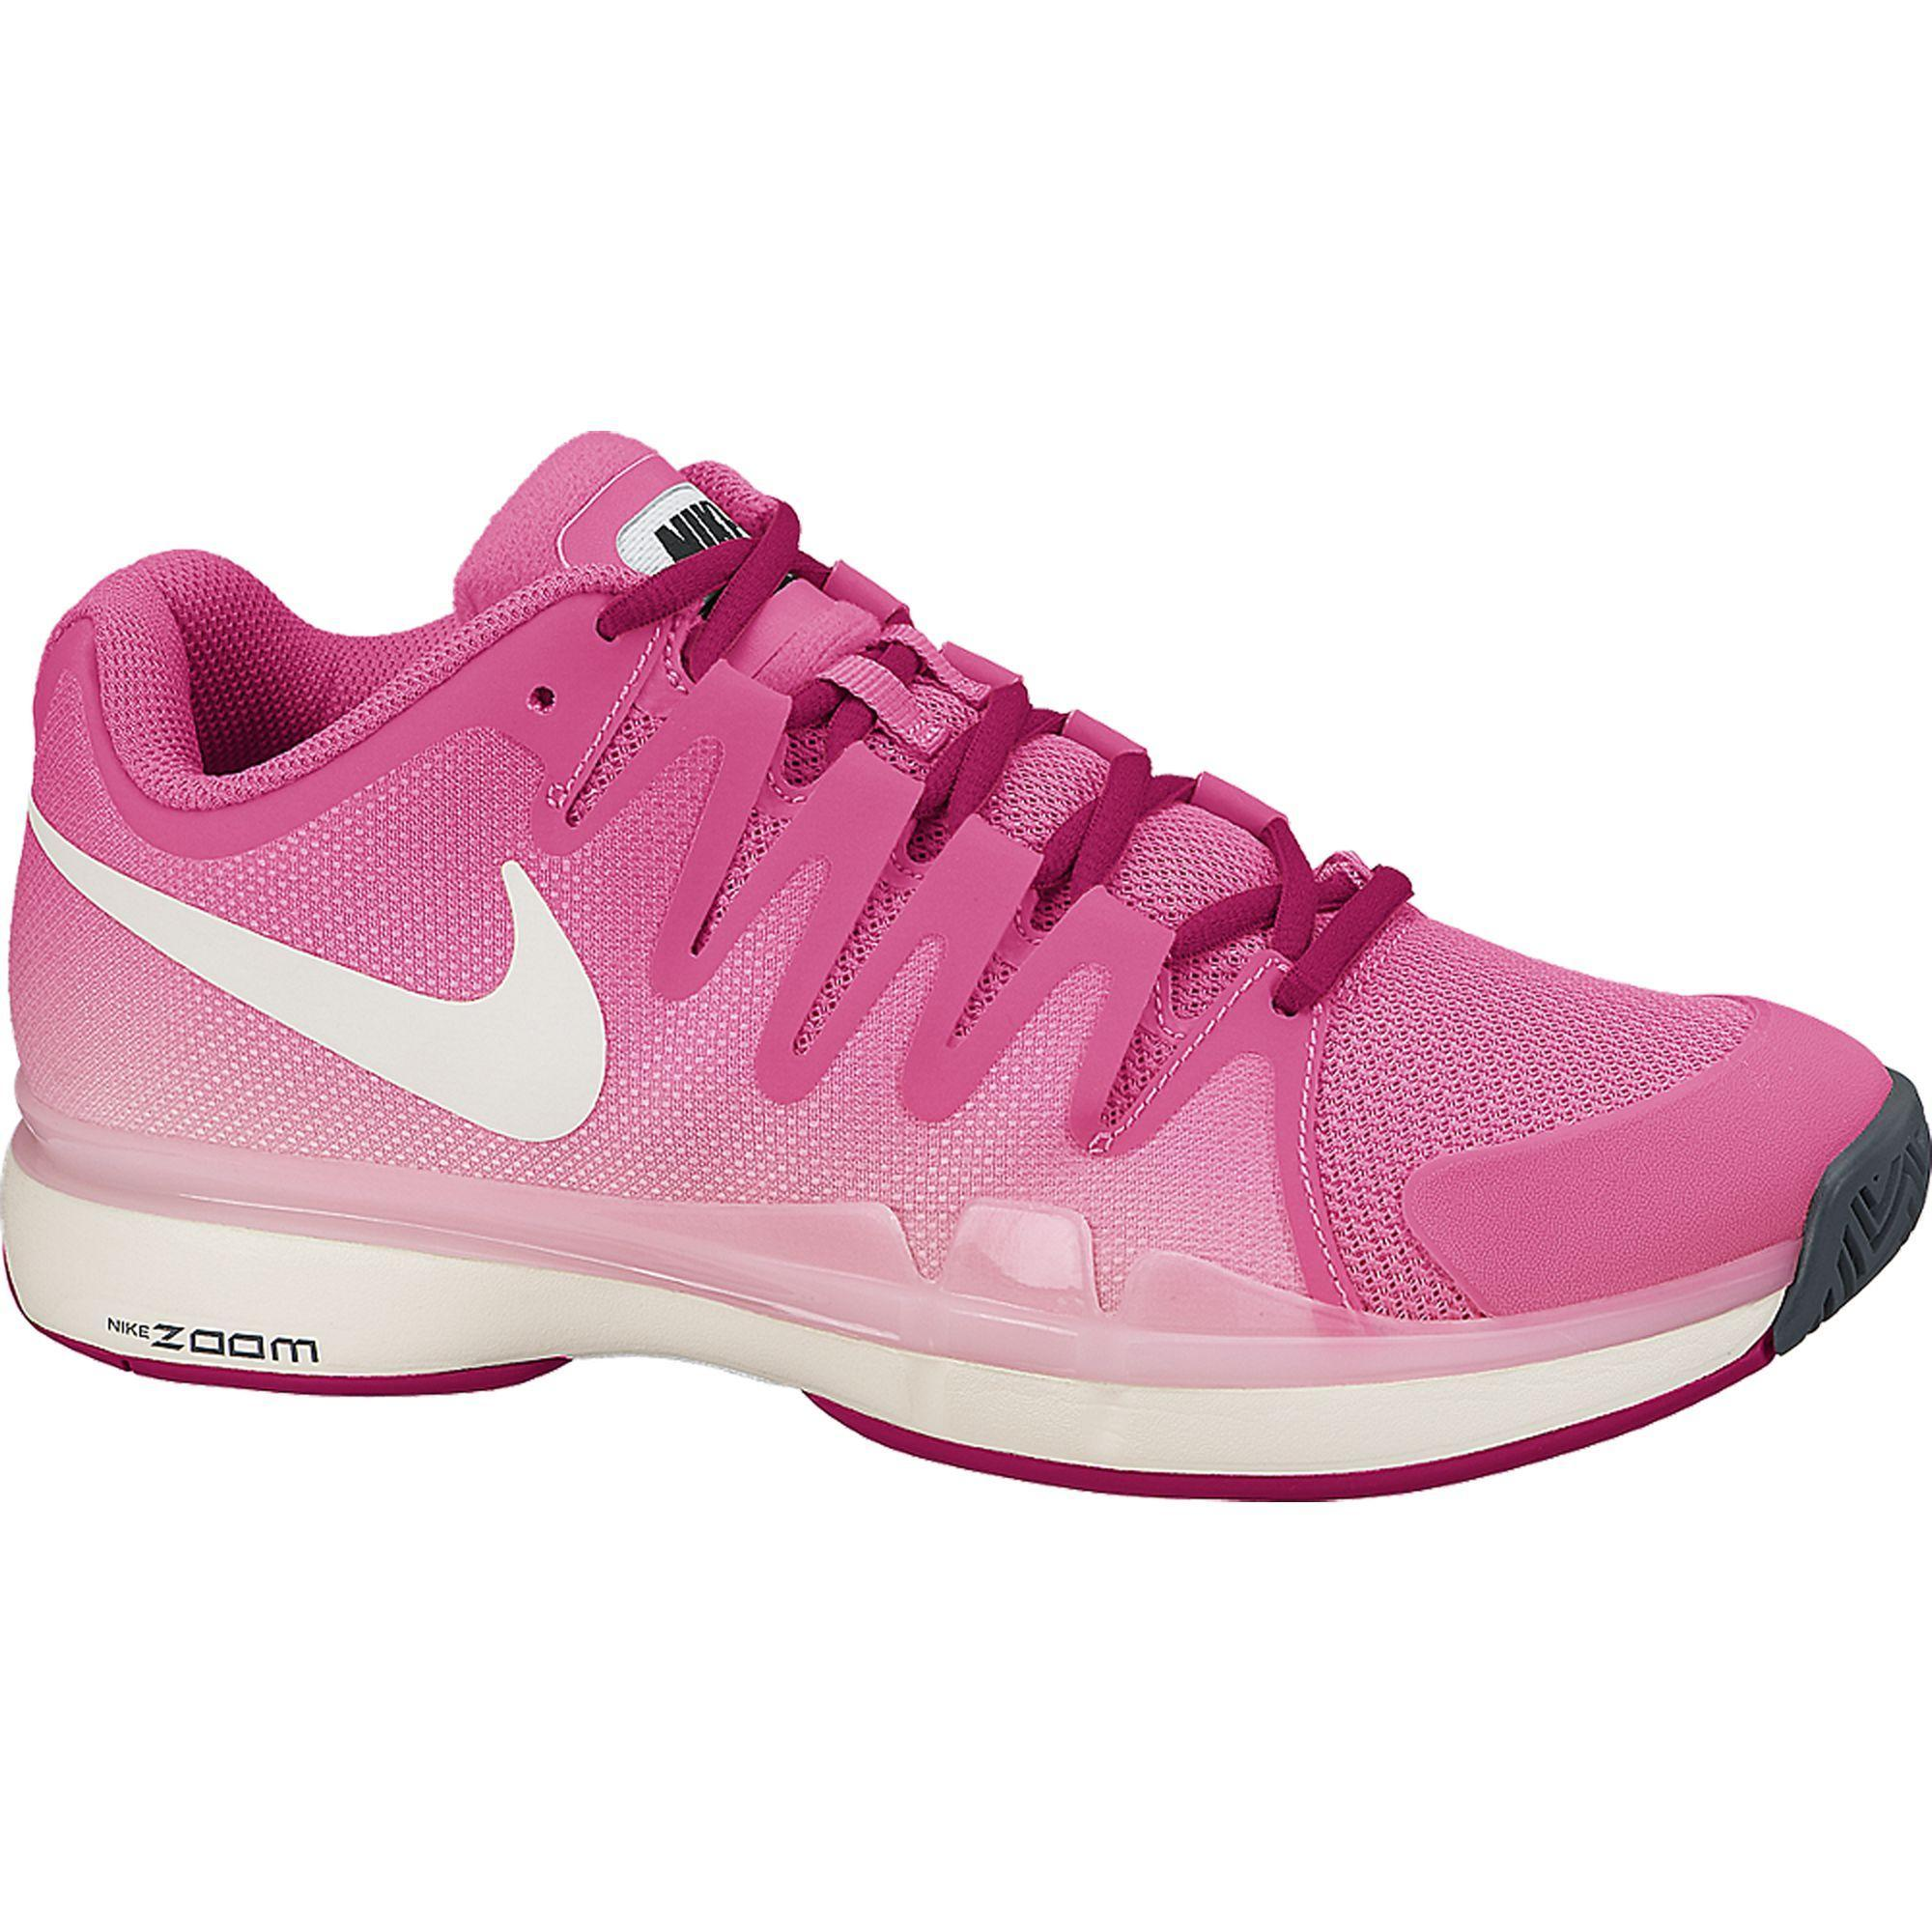 Nike Womens Zoom Vapor 9.5 Tour Tennis Shoes PinkIvory